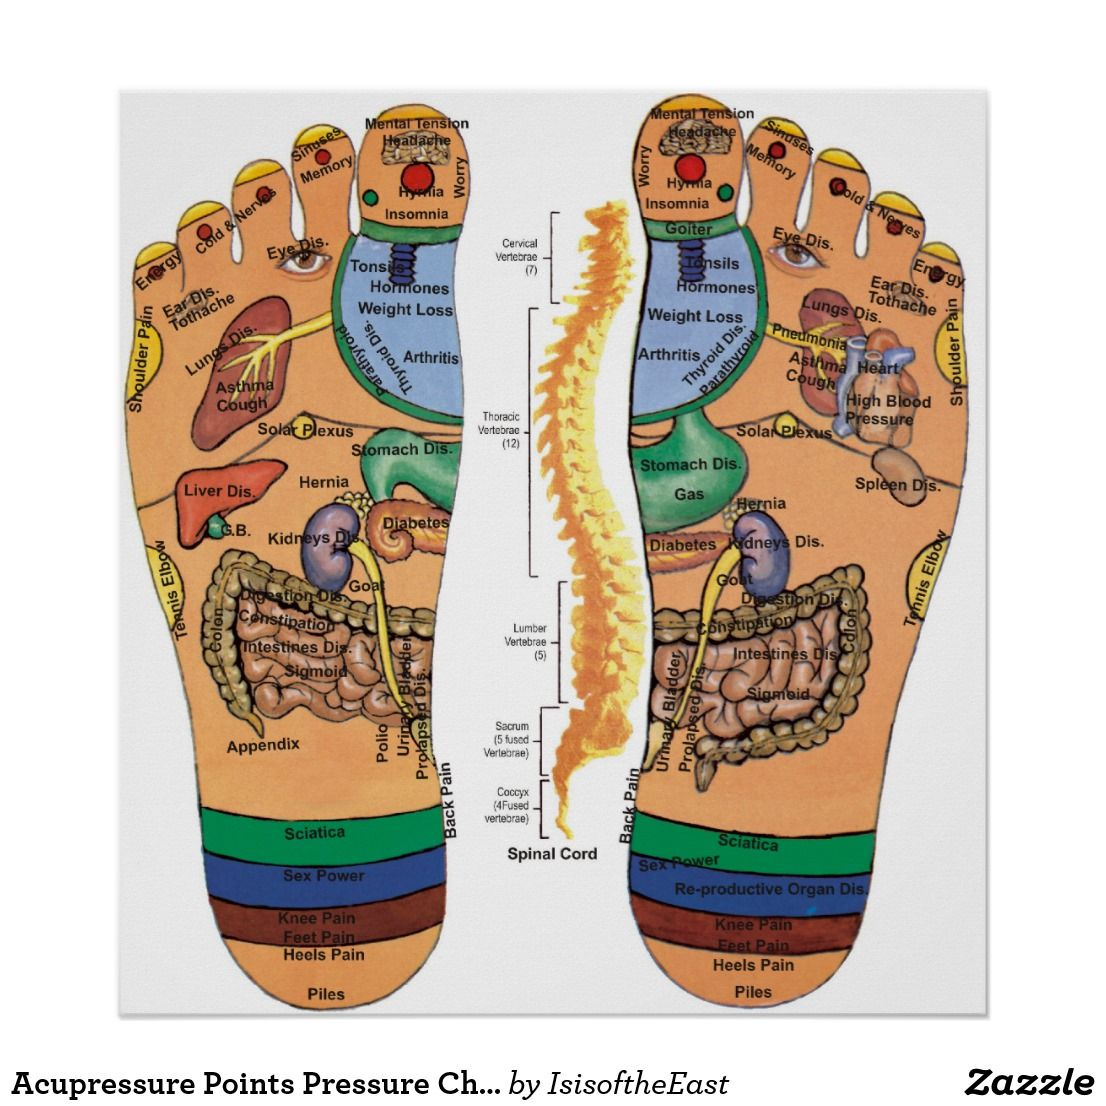 Acupressure Points Pressure Chart For The Feet Zazzle Com Acupressure Points Foot Reflexology Acupuncture Points Chart